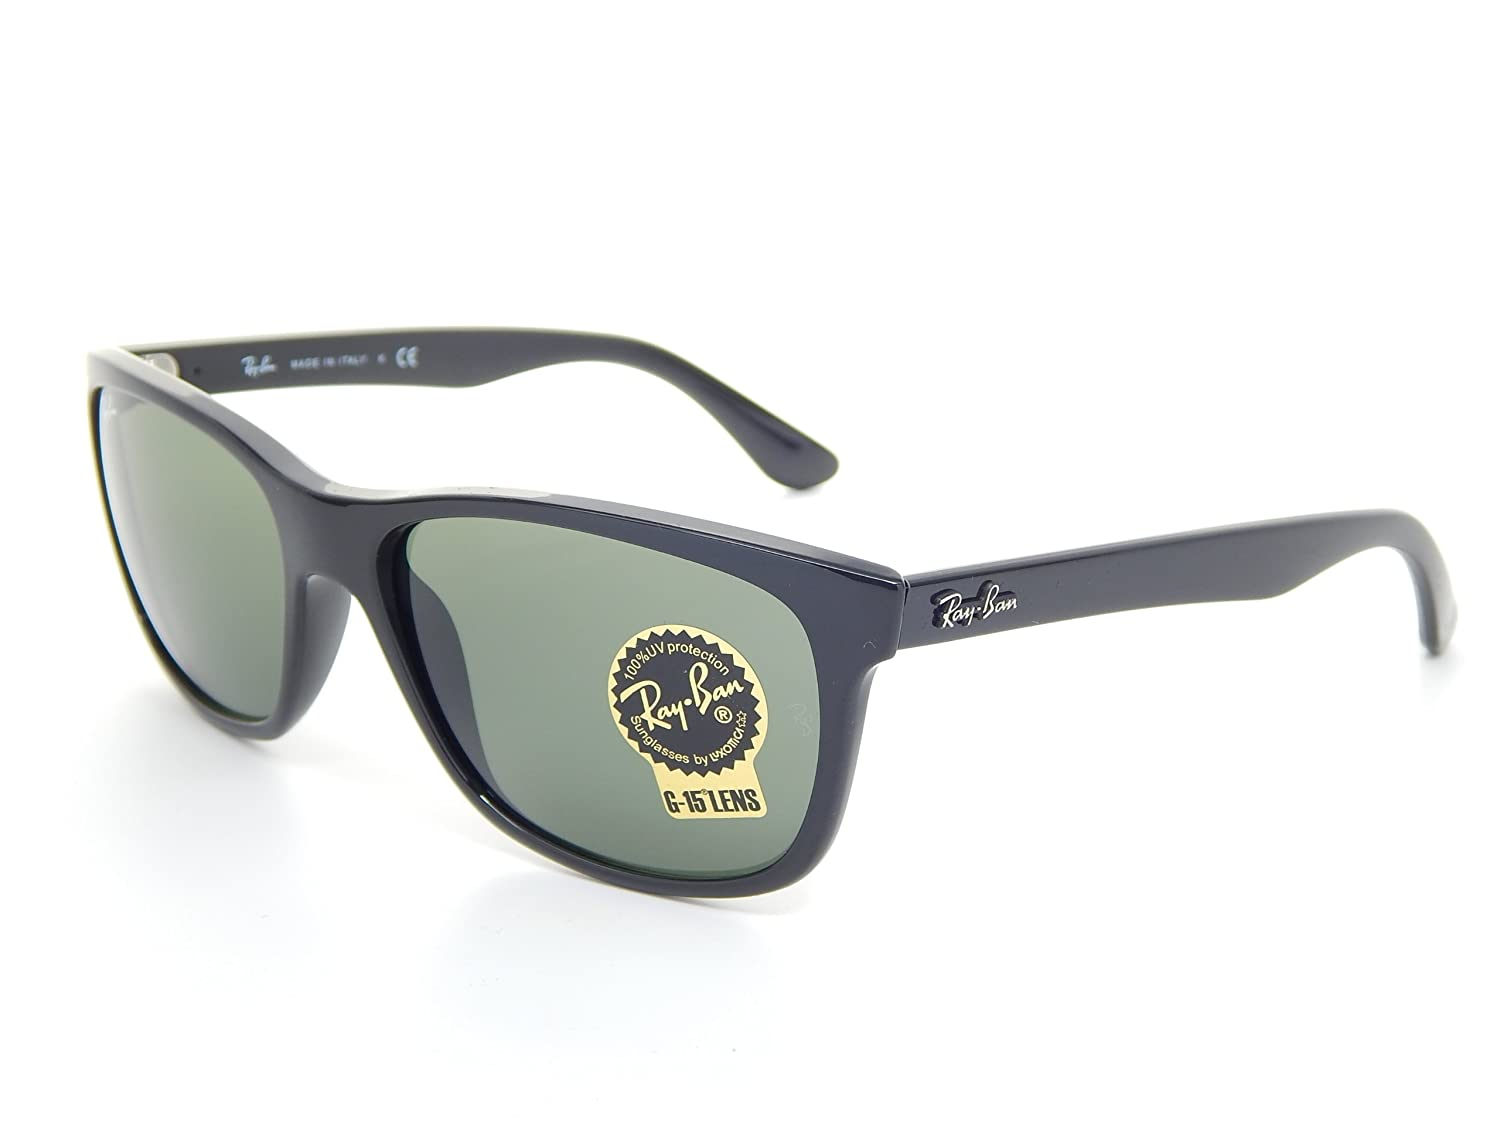 35a9542e086 Amazon.com  New Ray Ban RB4181 601 Black Crystal Green 57mm Sunglasses   Shoes